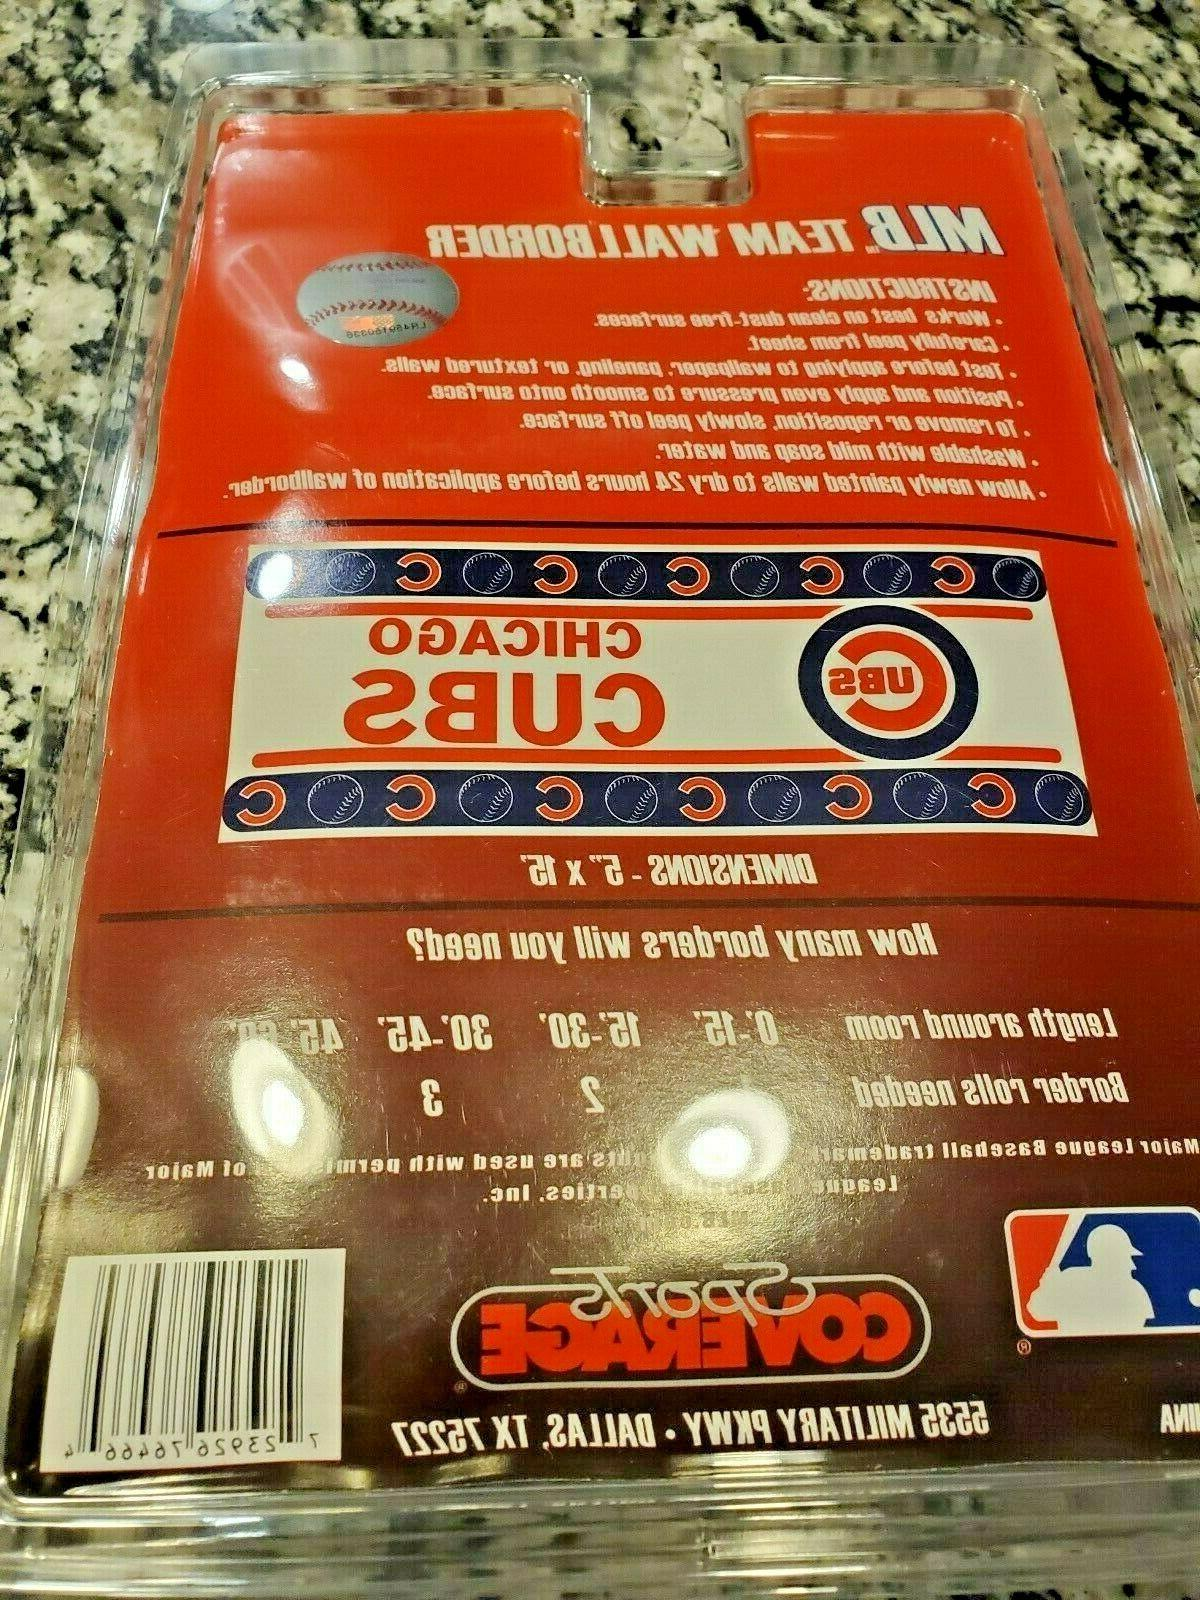 CHICAGO MLB WALLPAPER BORDER. NWT 5''X15'